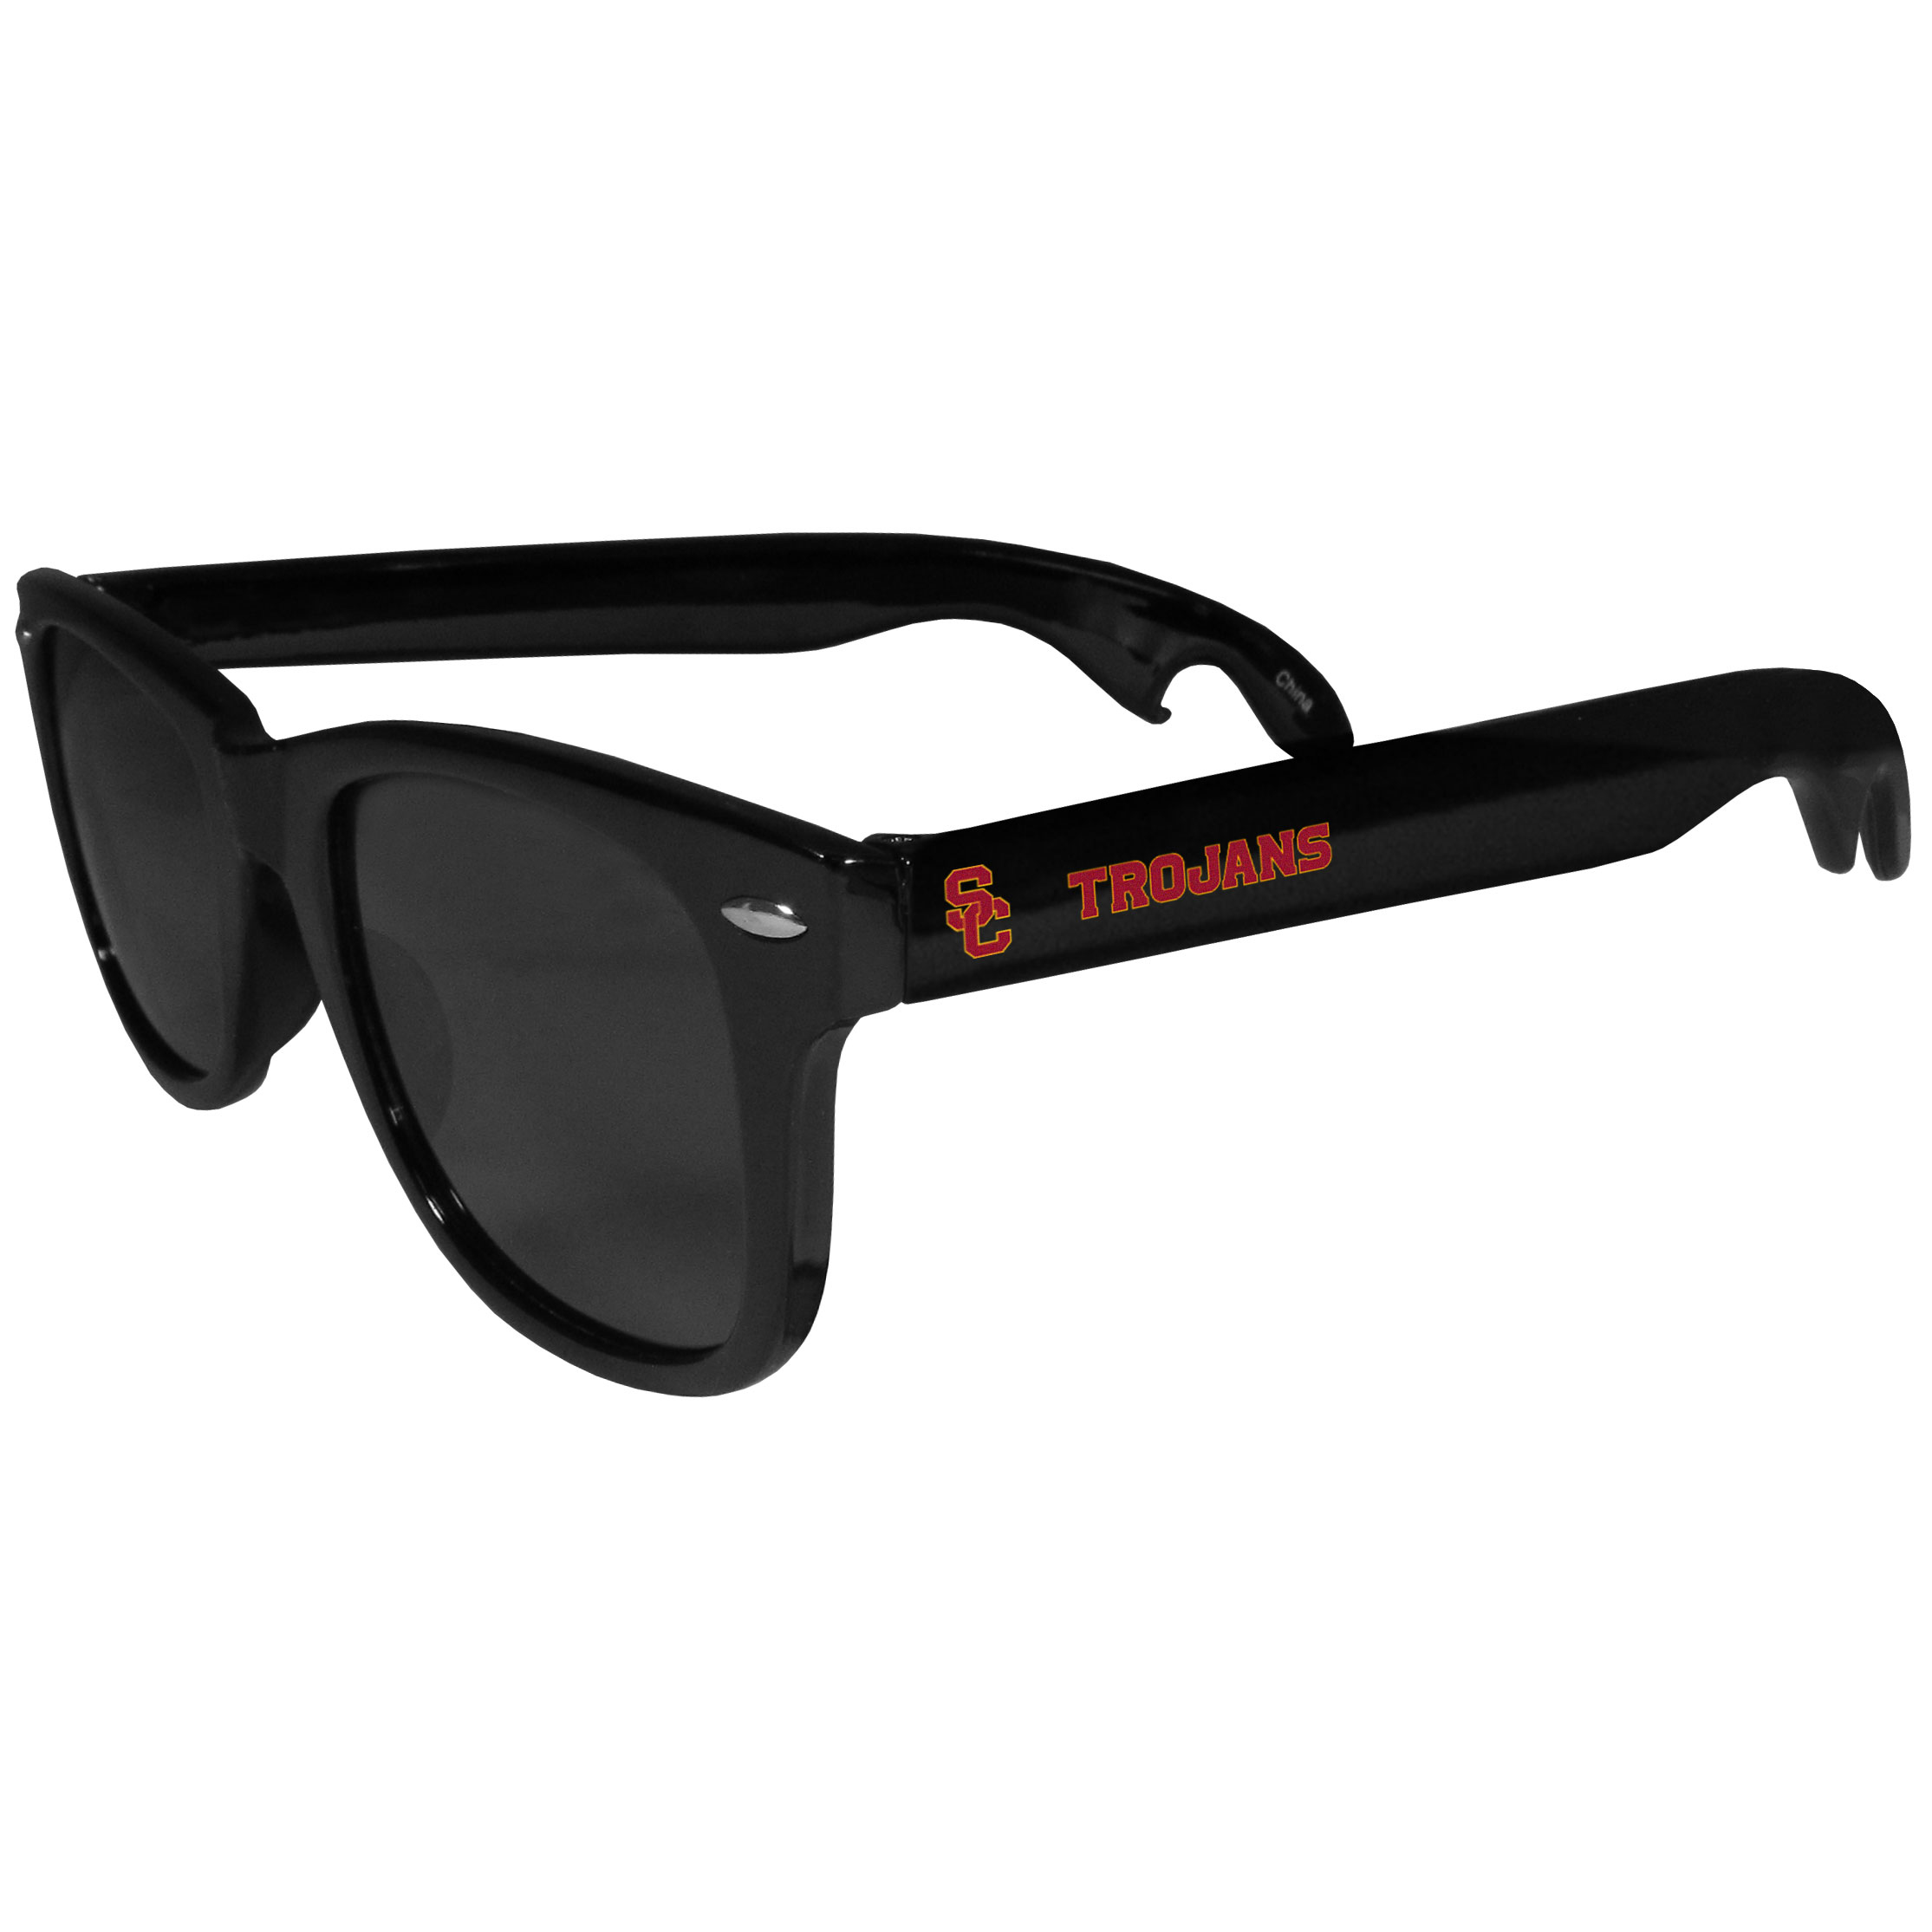 USC Trojans Beachfarer Bottle Opener Sunglasses - Seriously, these sunglasses open bottles! Keep the party going with these amazing USC Trojans bottle opener sunglasses. The stylish retro frames feature team designs on the arms and functional bottle openers on the end of the arms. Whether you are at the beach or having a backyard BBQ on game day, these shades will keep your eyes protected with 100% UVA/UVB protection and keep you hydrated with the handy bottle opener arms.